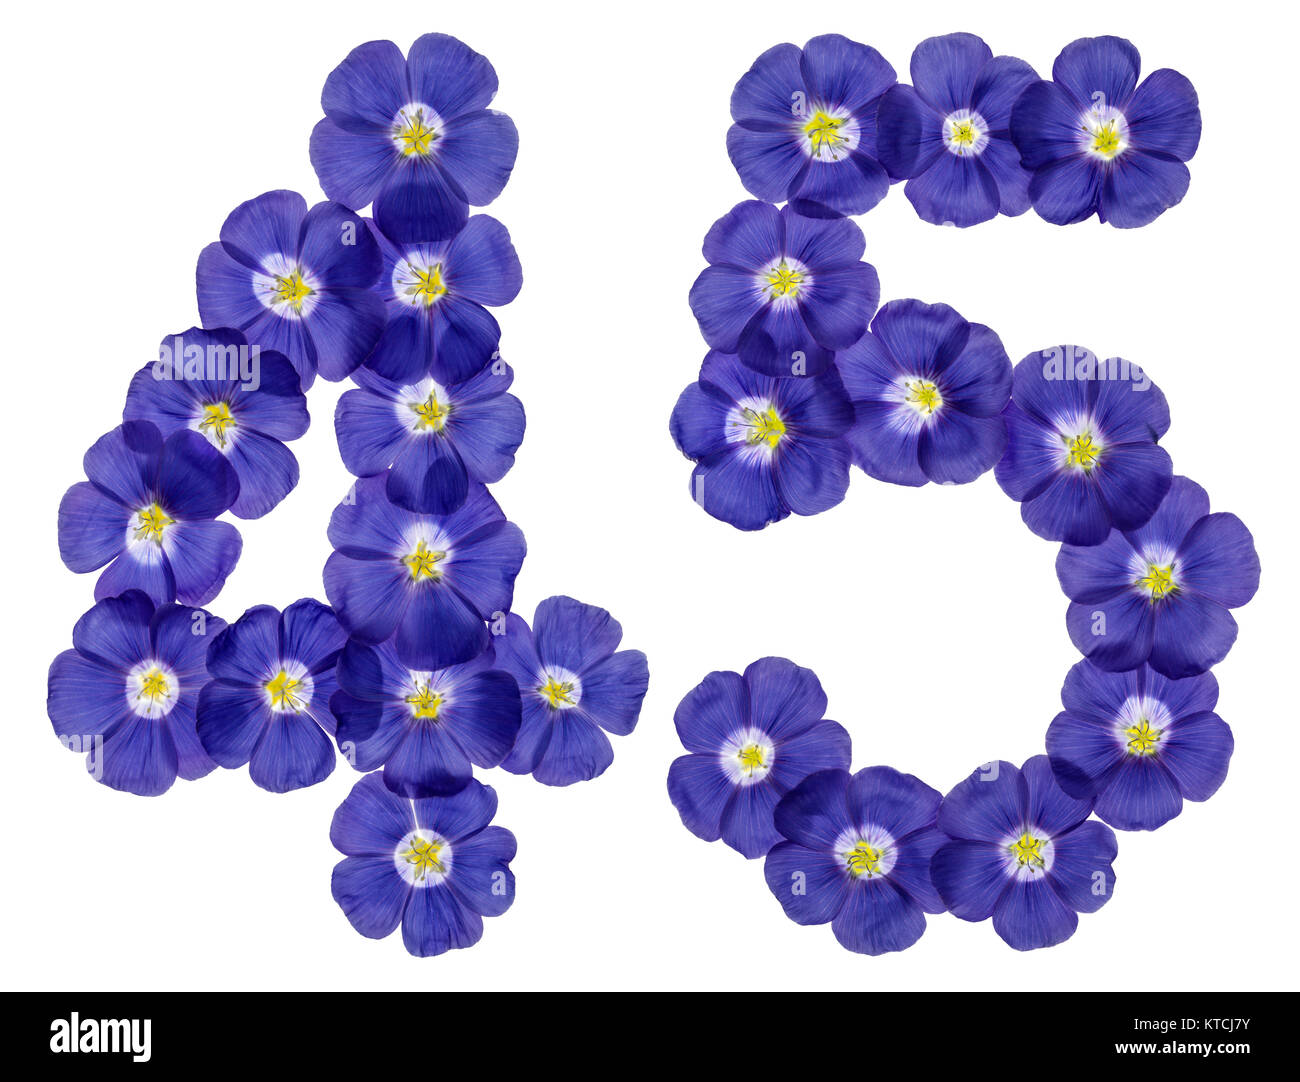 Arabic numeral 45, forty five, from blue flowers of flax, isolated on white background Stock Photo